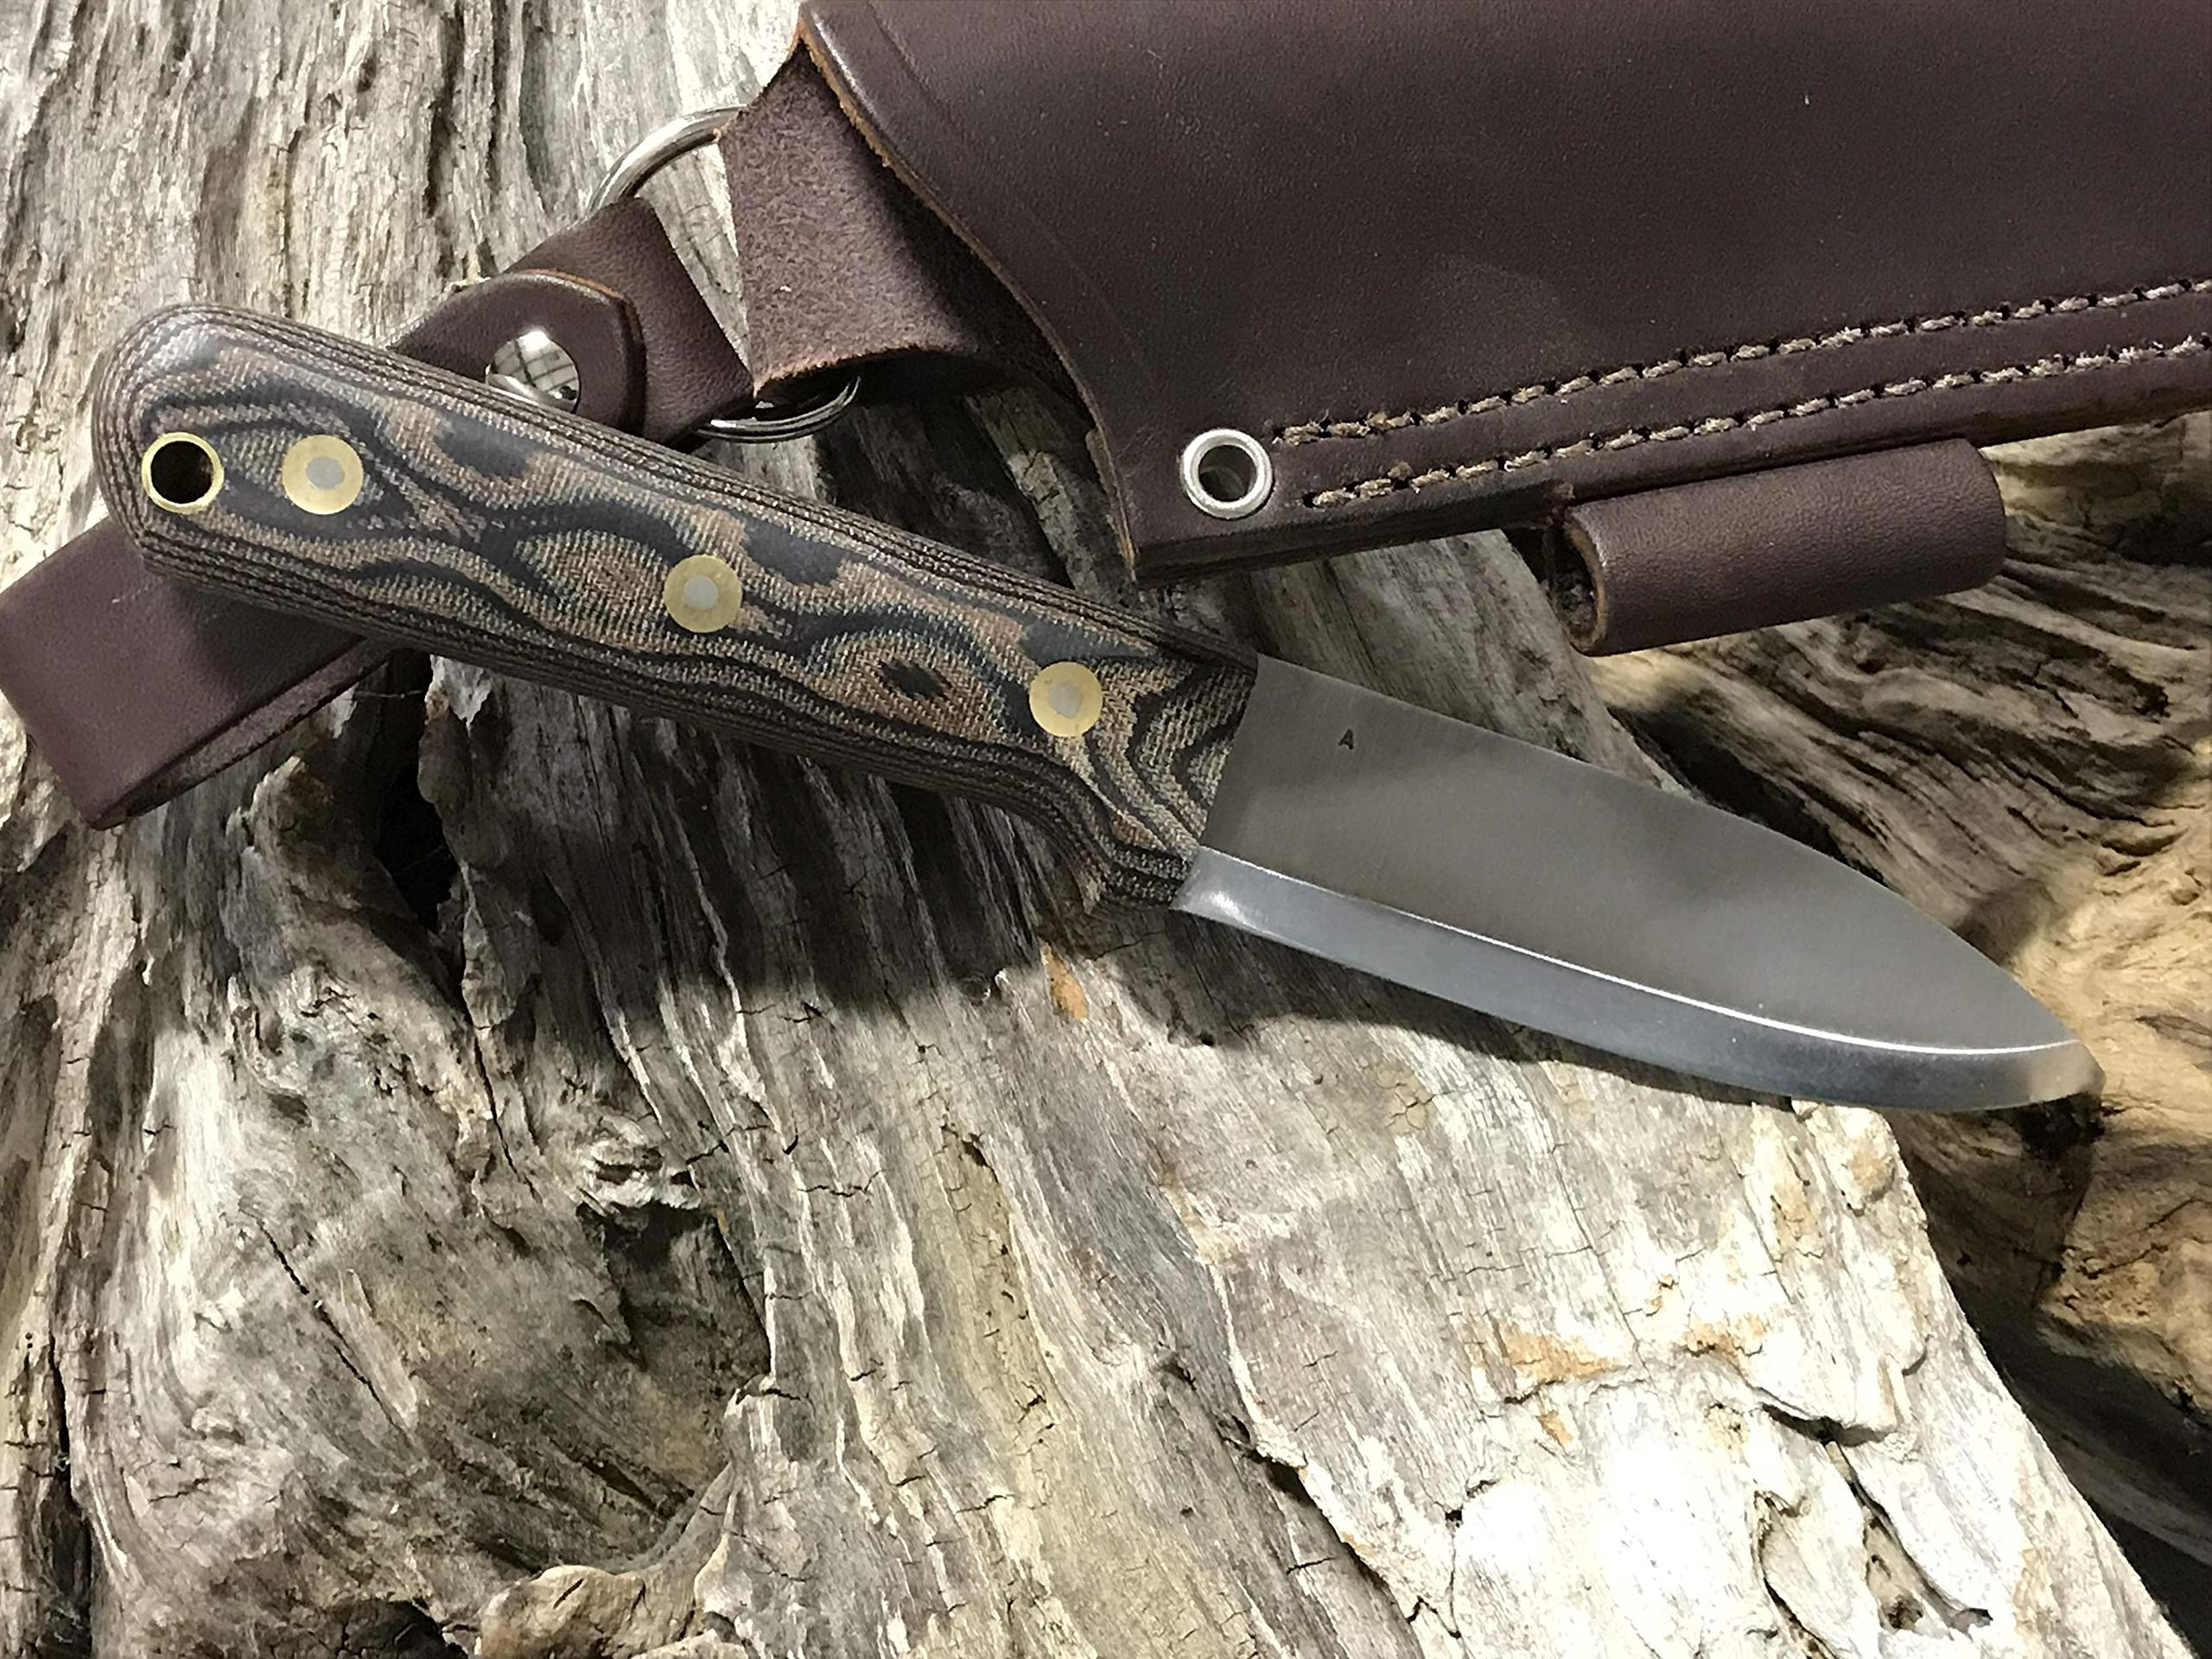 L.T. Wright Handcrafted Knives Genesis w/Scandi Grind, A2 Steel (Python) by L.T. Wright Handcrafted Knives (Image #4)